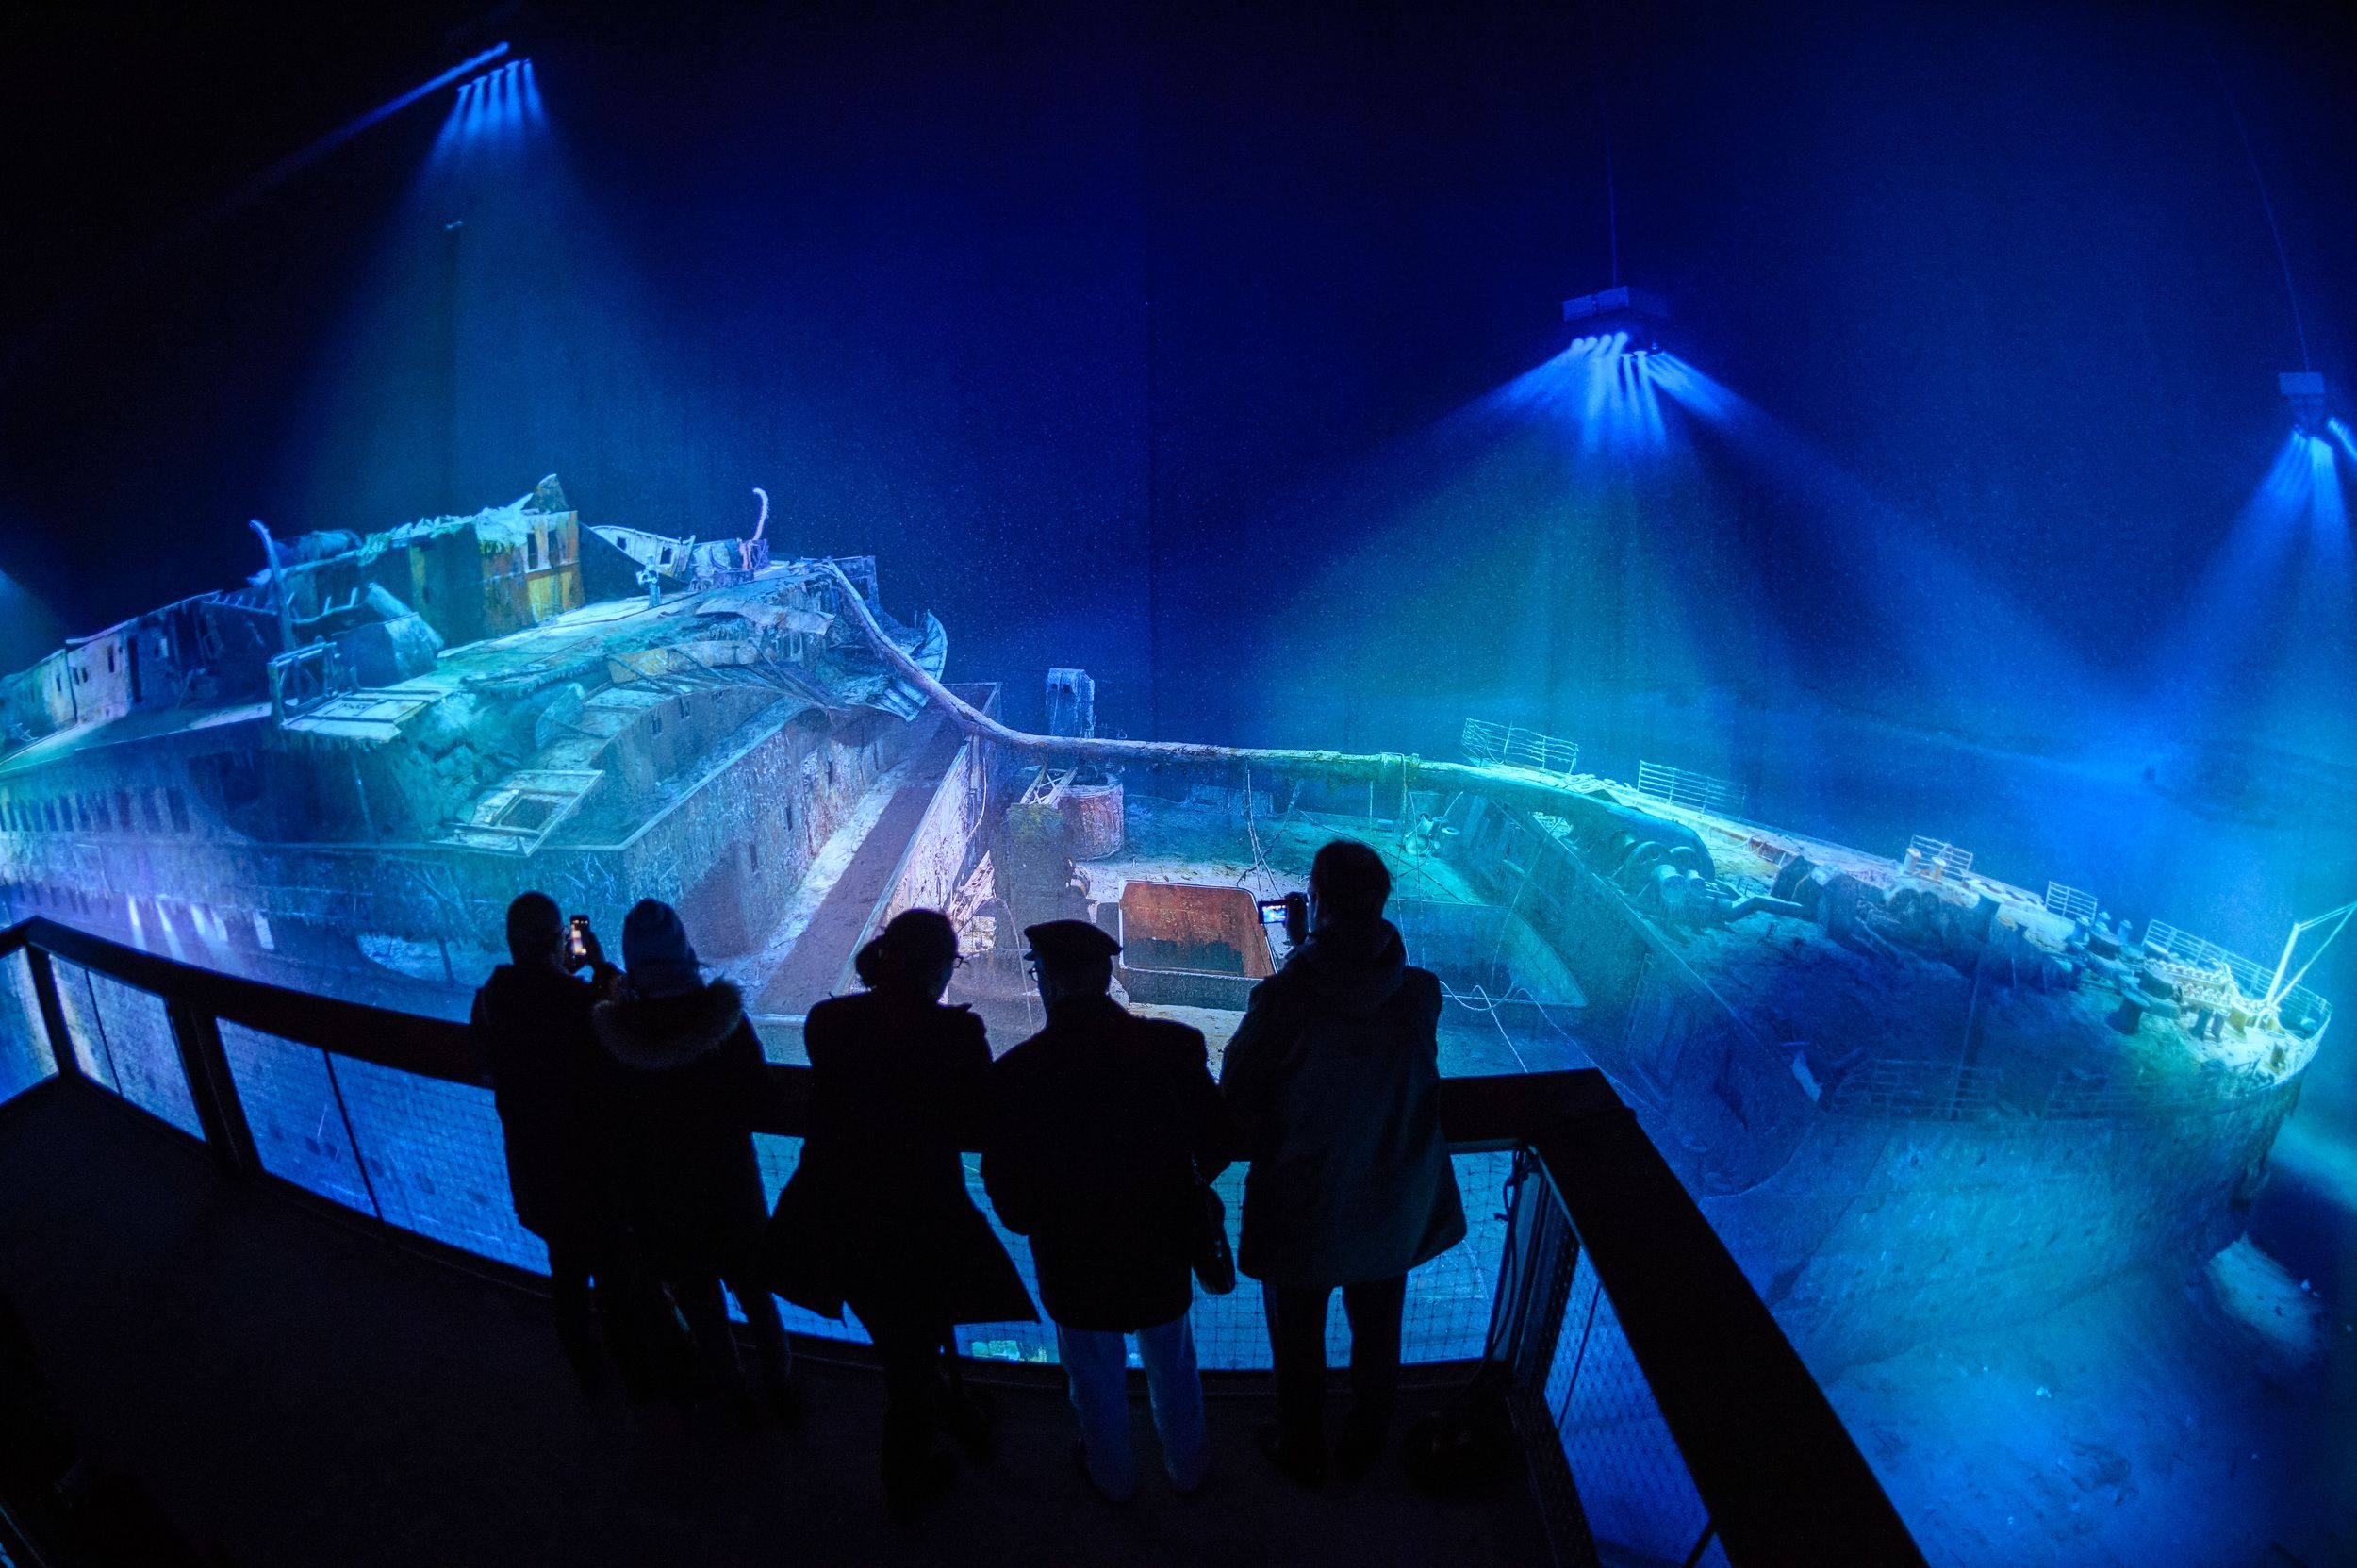 LEIPZIG, GERMANY - JANUARY 27: People look at a large-scale 360 degree panorama presentation of the Titanic shipwreck by artist Yadegar Asisi during a press preview on January 27, 2017 in Leipzig, Germany. The view of the wreck simulates a vantage point 3,800 meters below sea level and the work is meant to illustrate mankind's hubris in seeking to overcome the laws of nature. Yadegar Asisi has created a variety of large-scale panoramas in recent years that deal with significant historical…